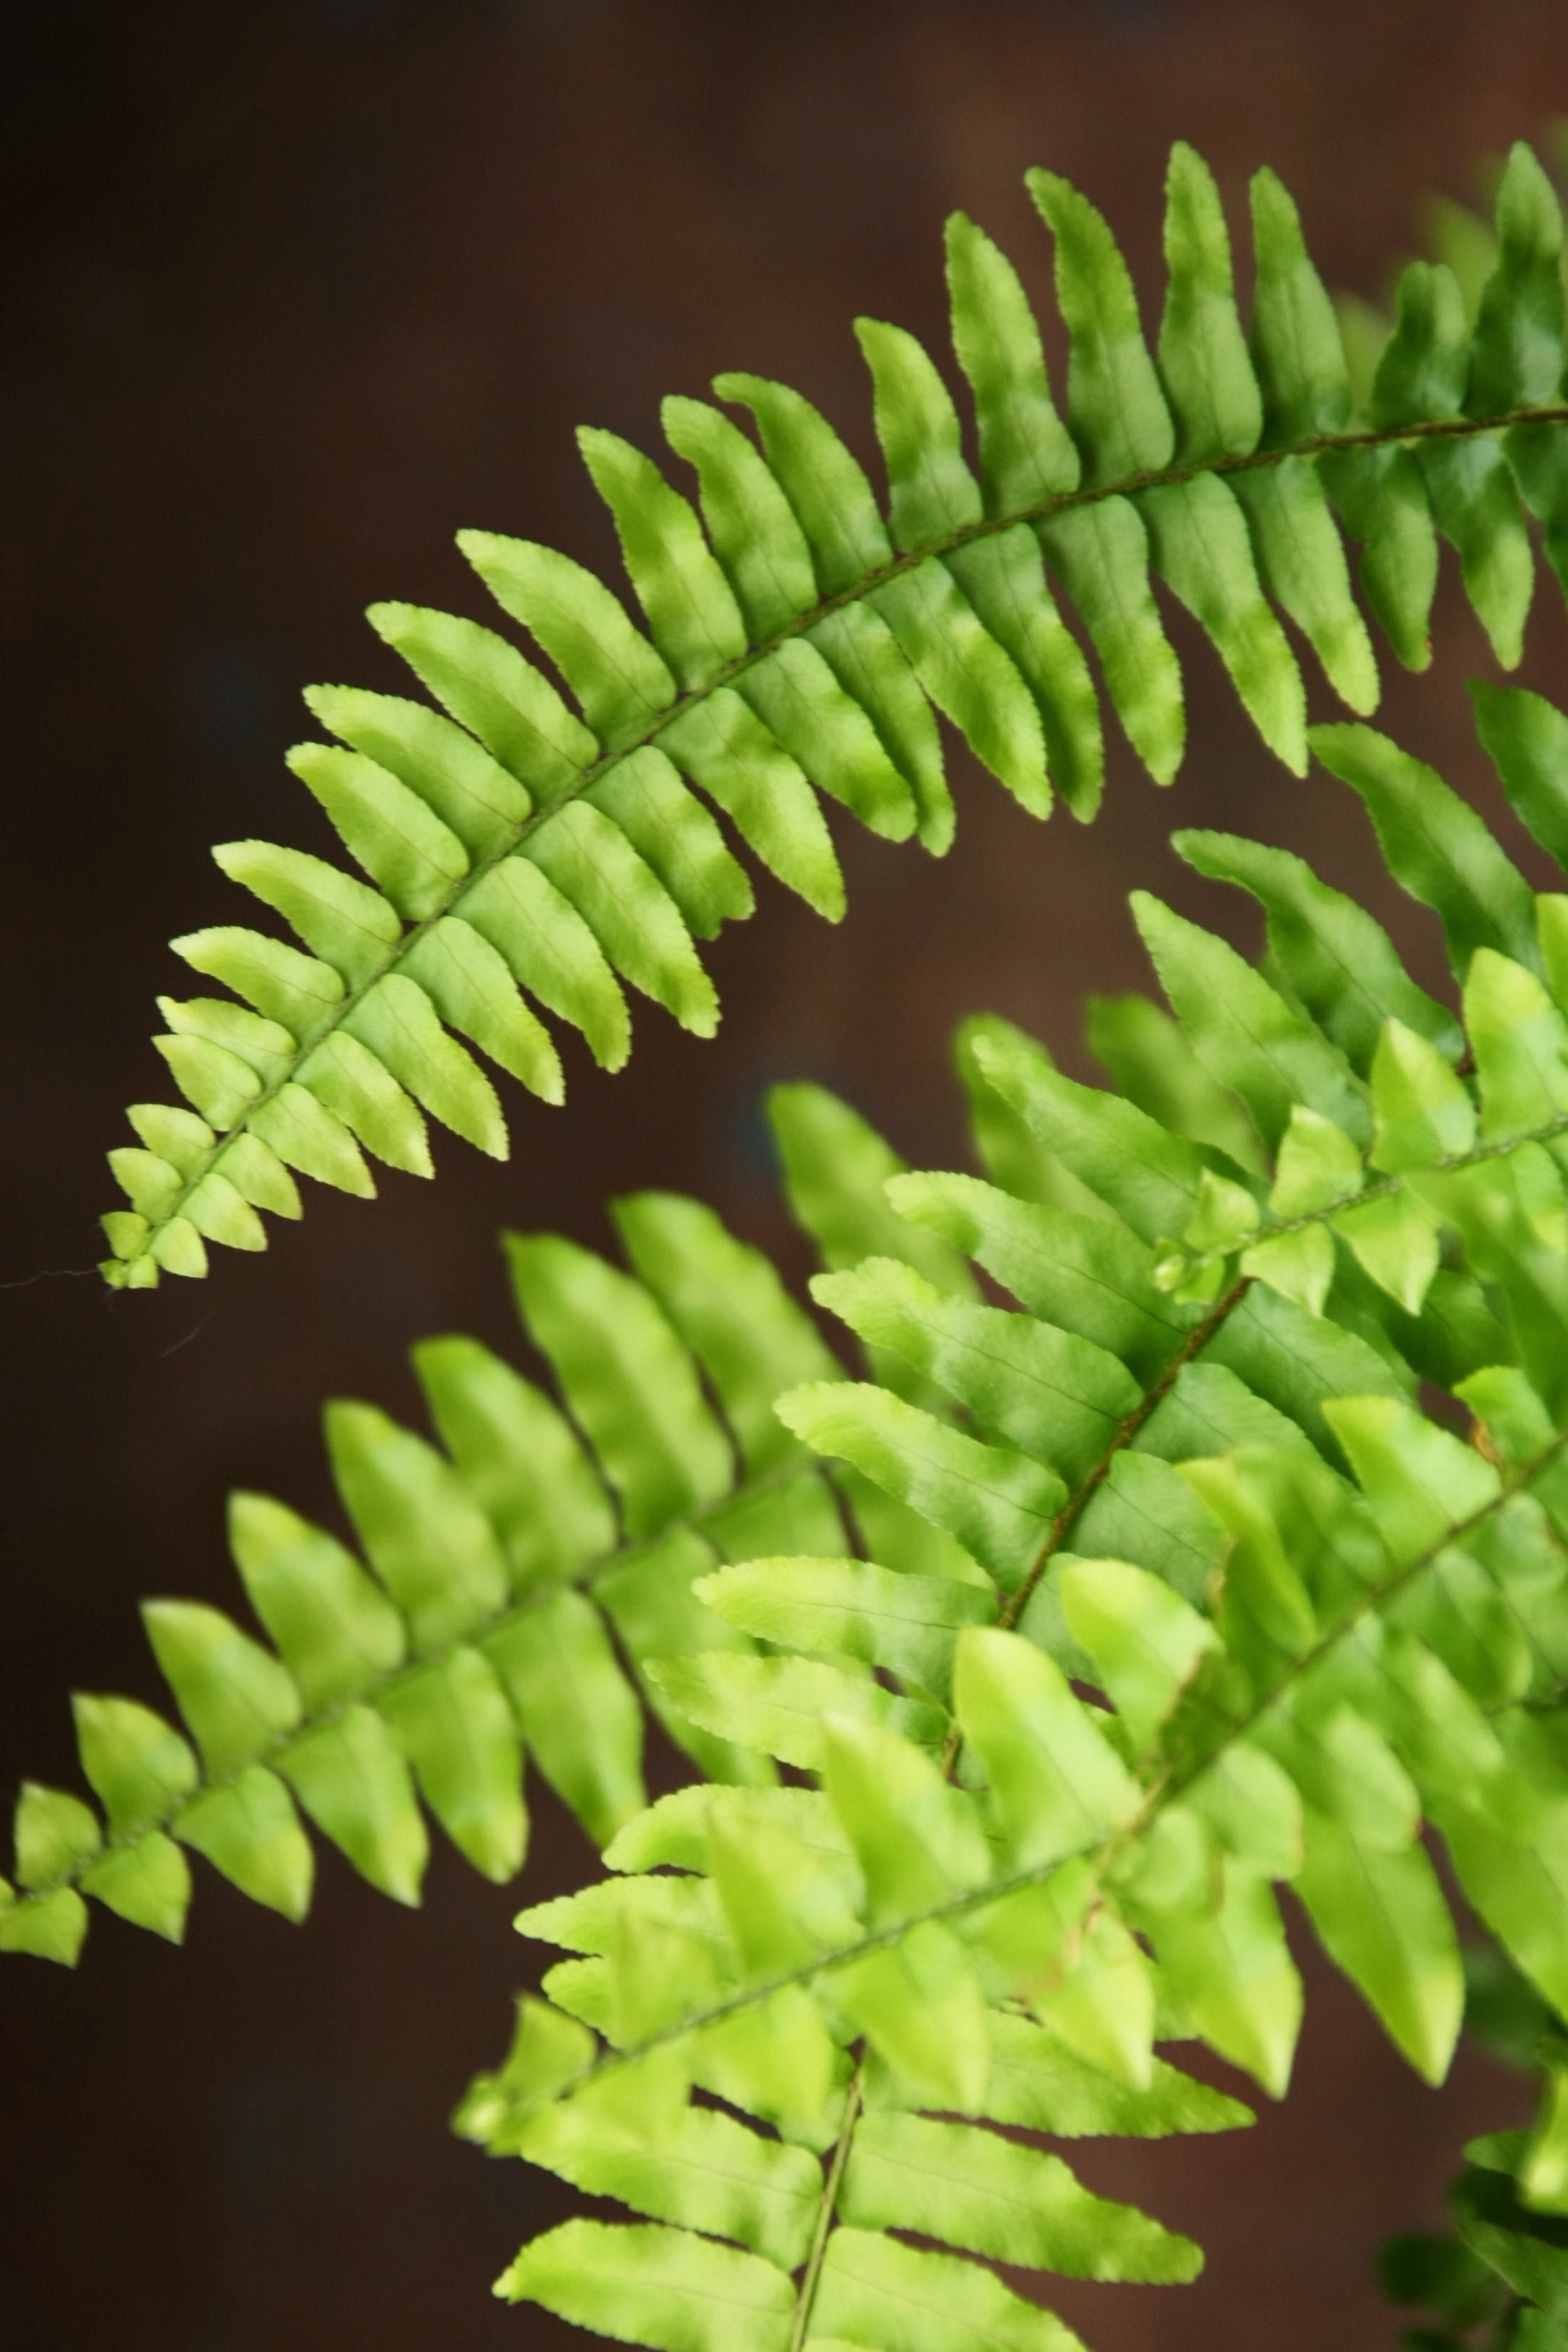 Free stock photo of fern leaves, forest, green leaves, nature